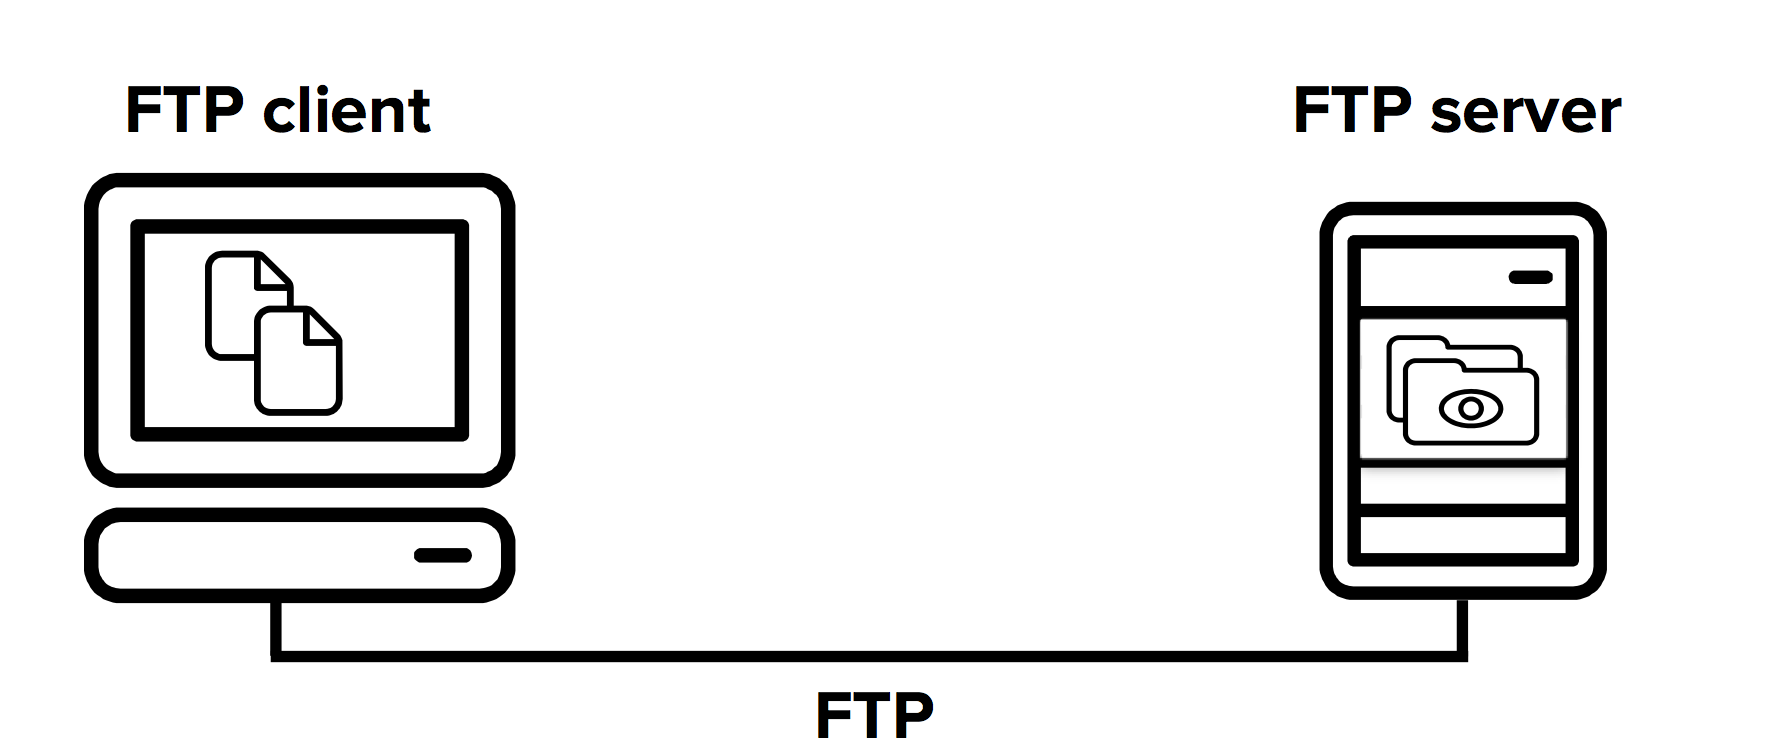 Connection between an FTP client and server